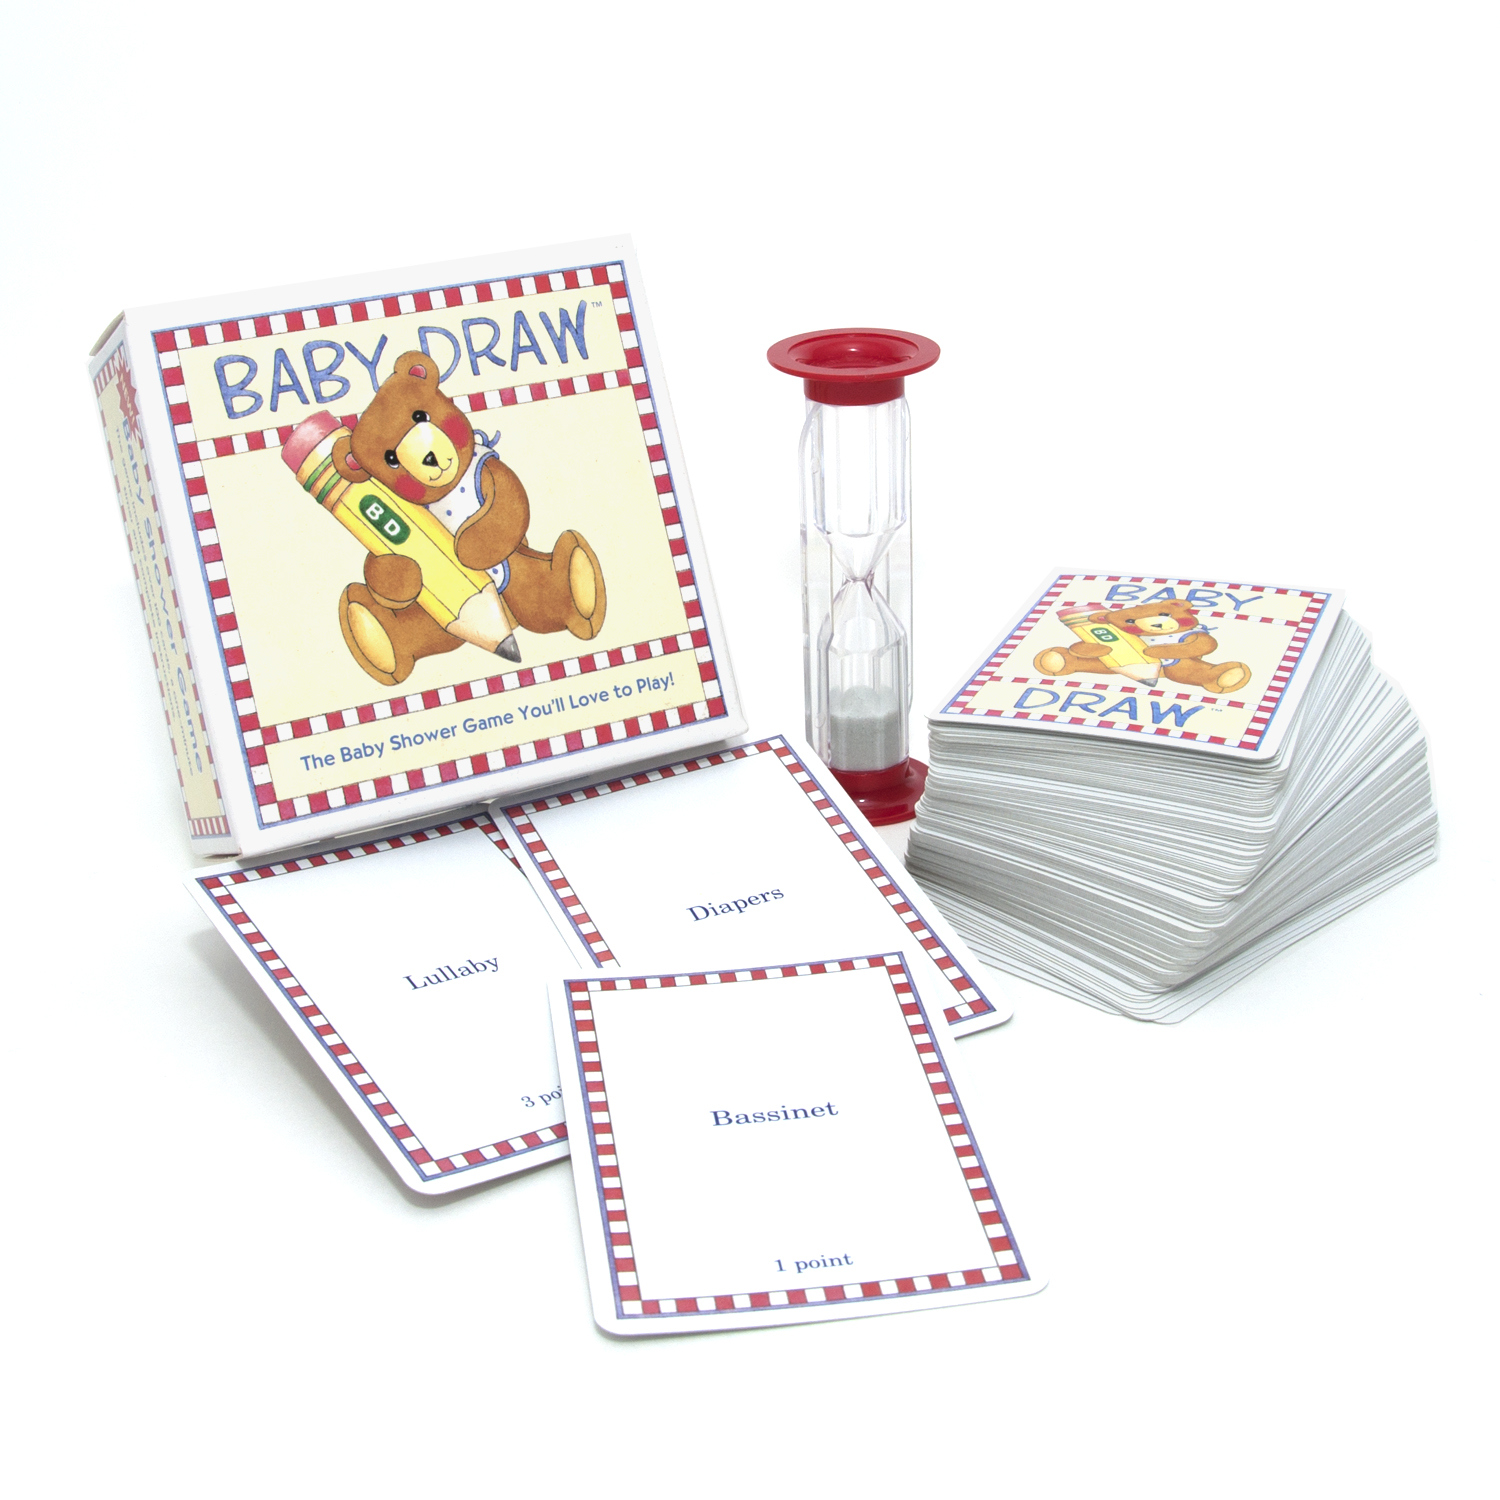 The Baby Shower Games You Ll Love To Play Baby Draw And More